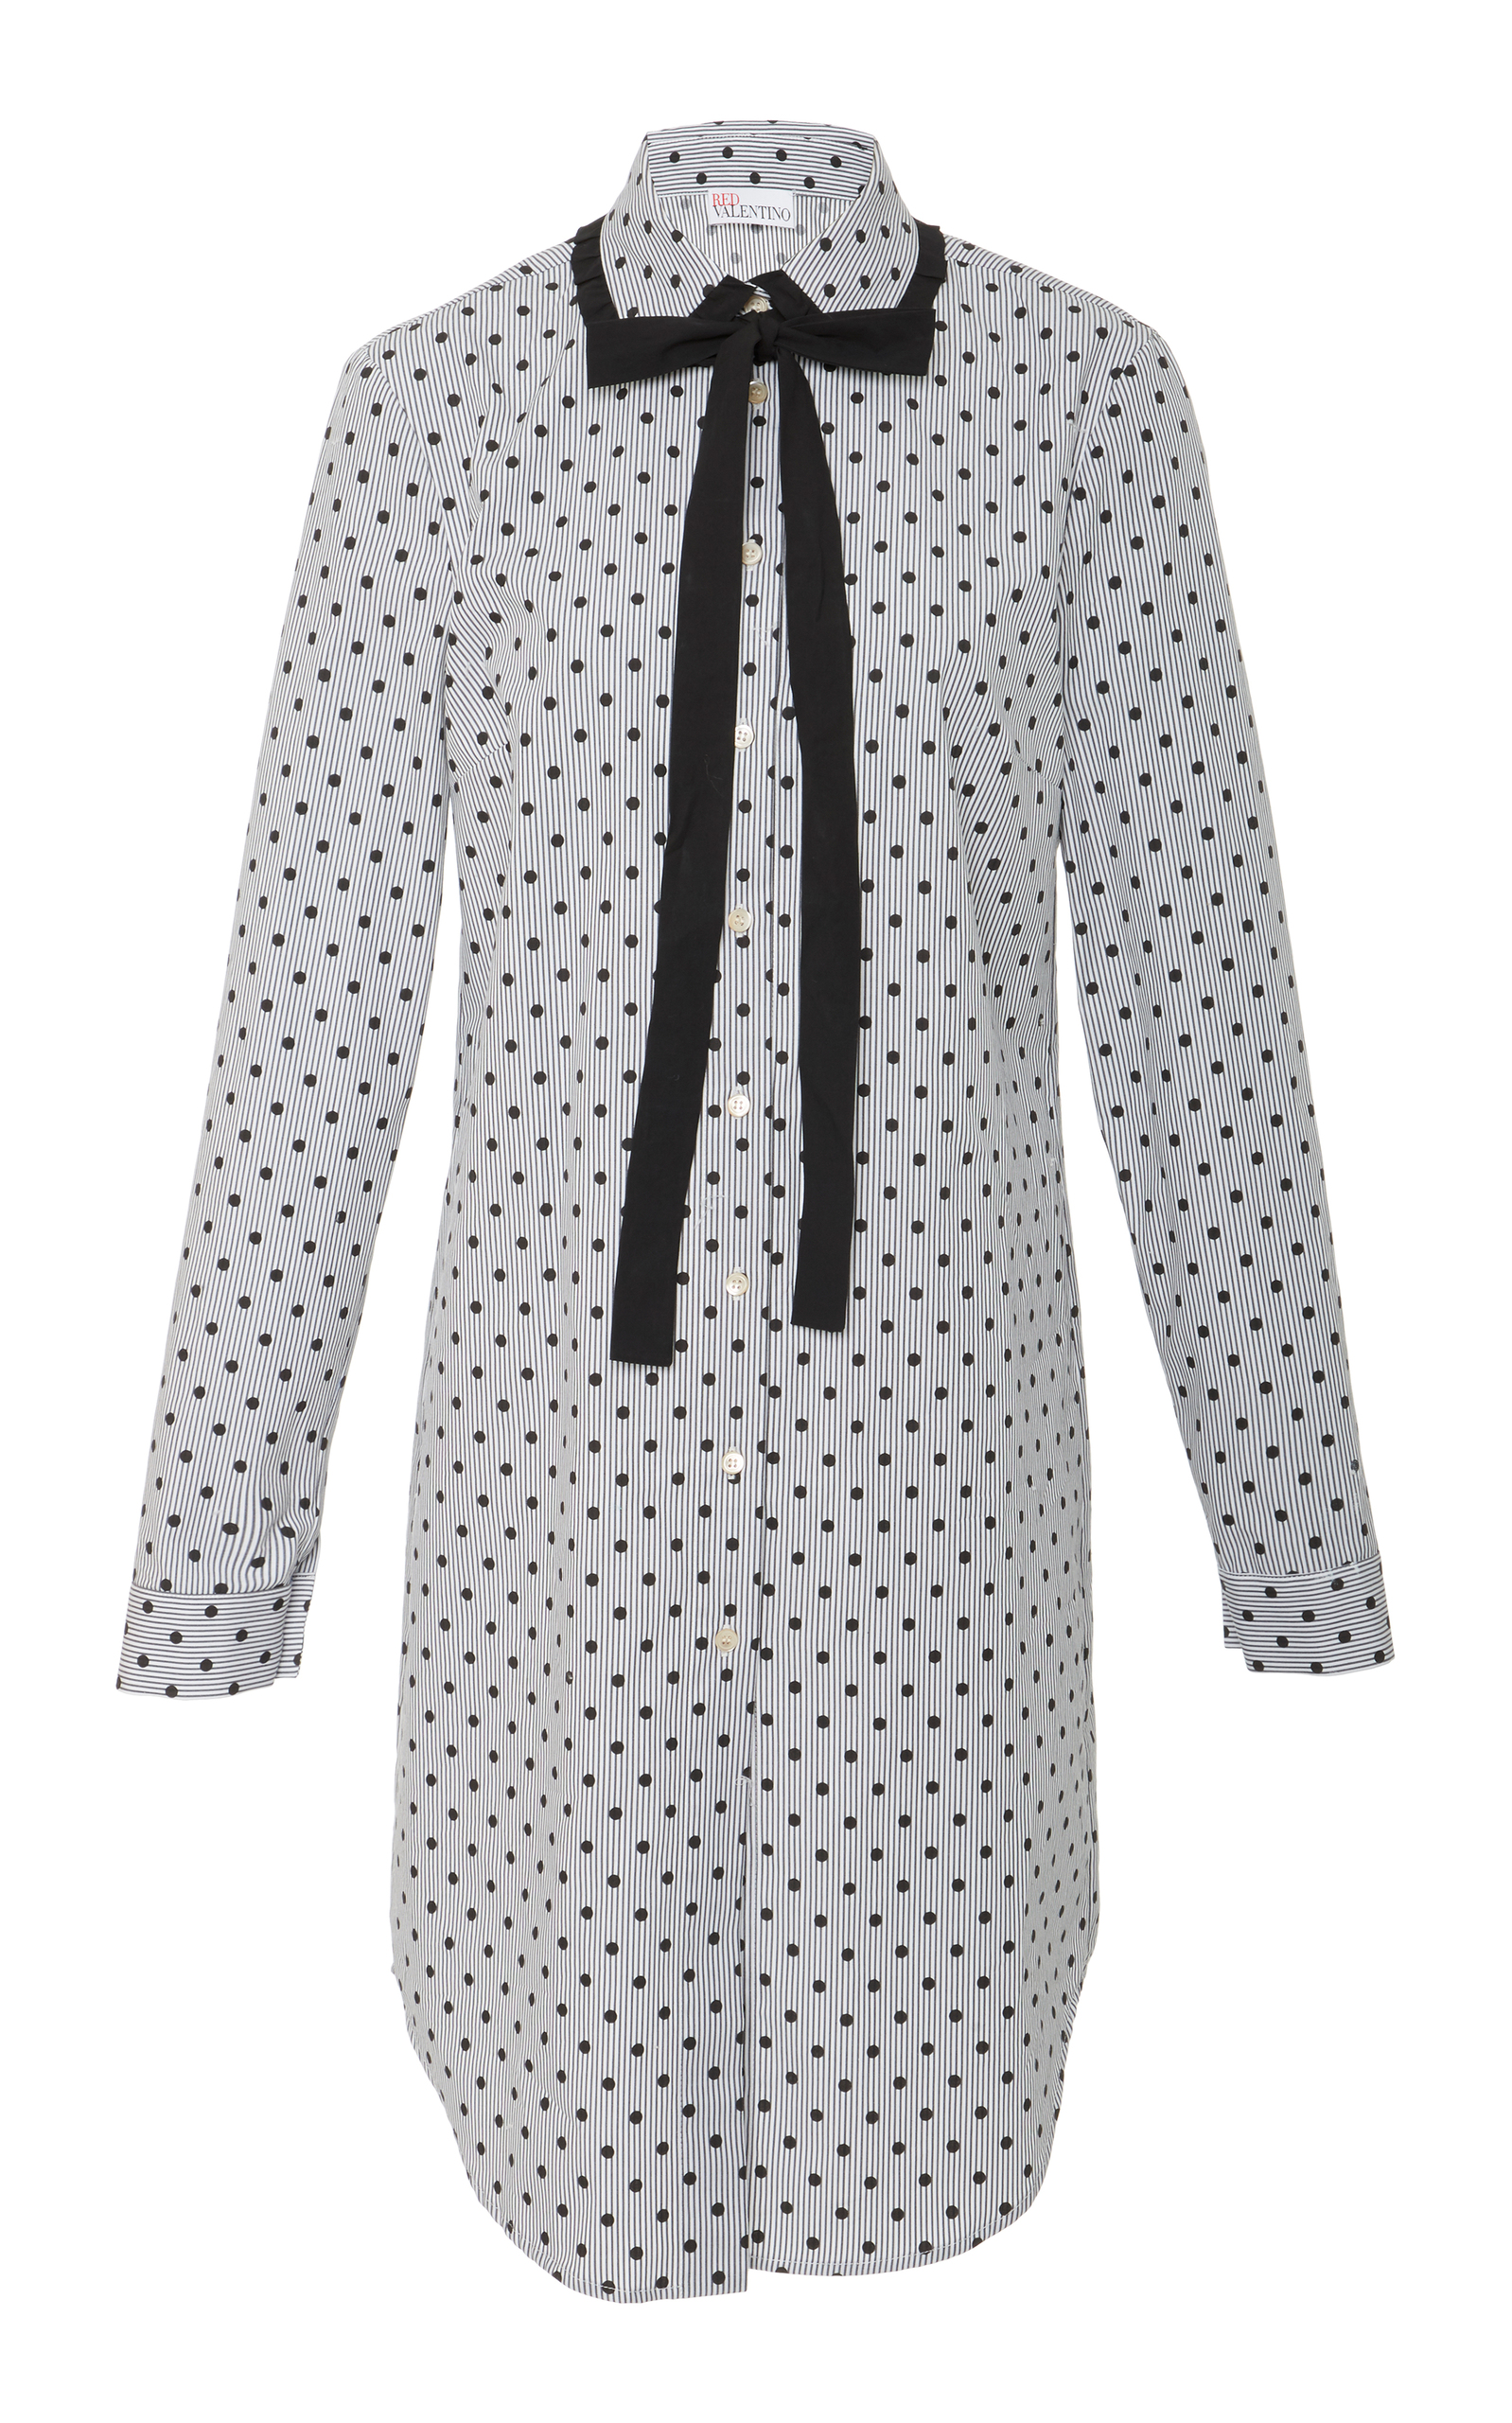 Red Valentino polka dot longline blouse Outlet New Styles Outlet Largest Supplier Footaction Cheap Price Cheap Genuine For Sale Cheap Online 1Yhr5xi1J9